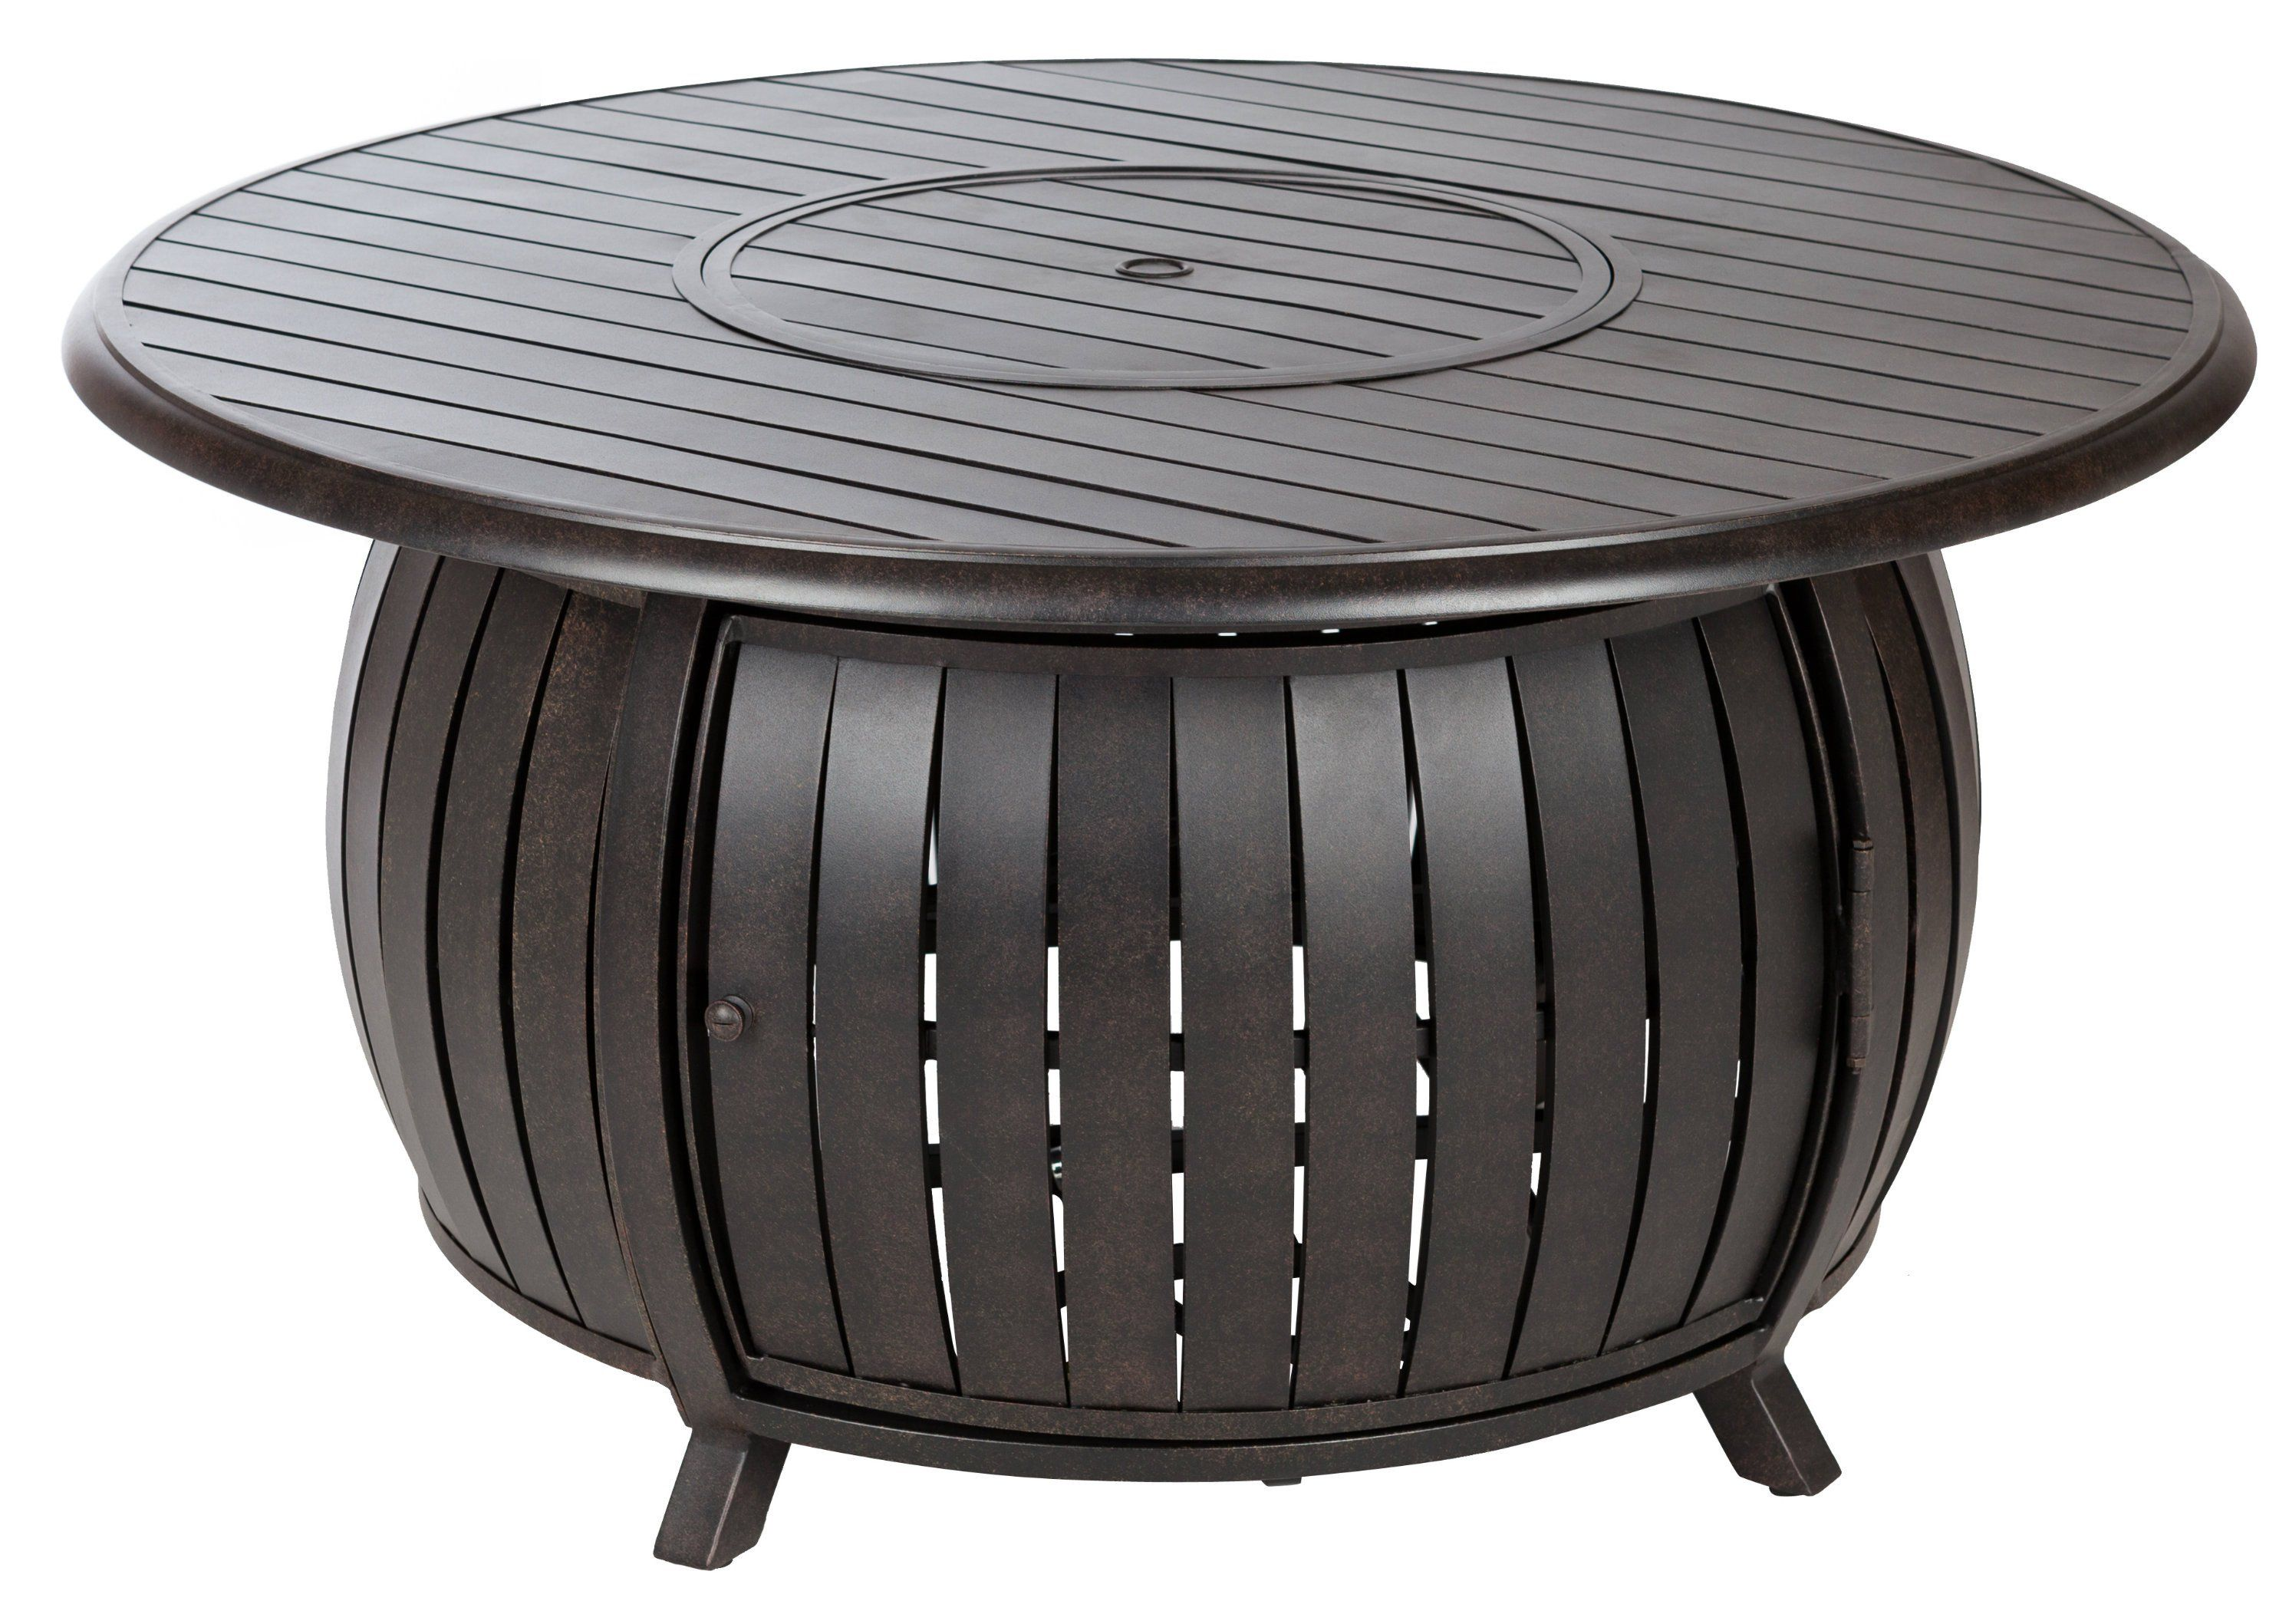 Grand Copper Extruded Aluminum Fire Pit - LPG | Round ... on For Living Lawrence Fire Pit id=40586